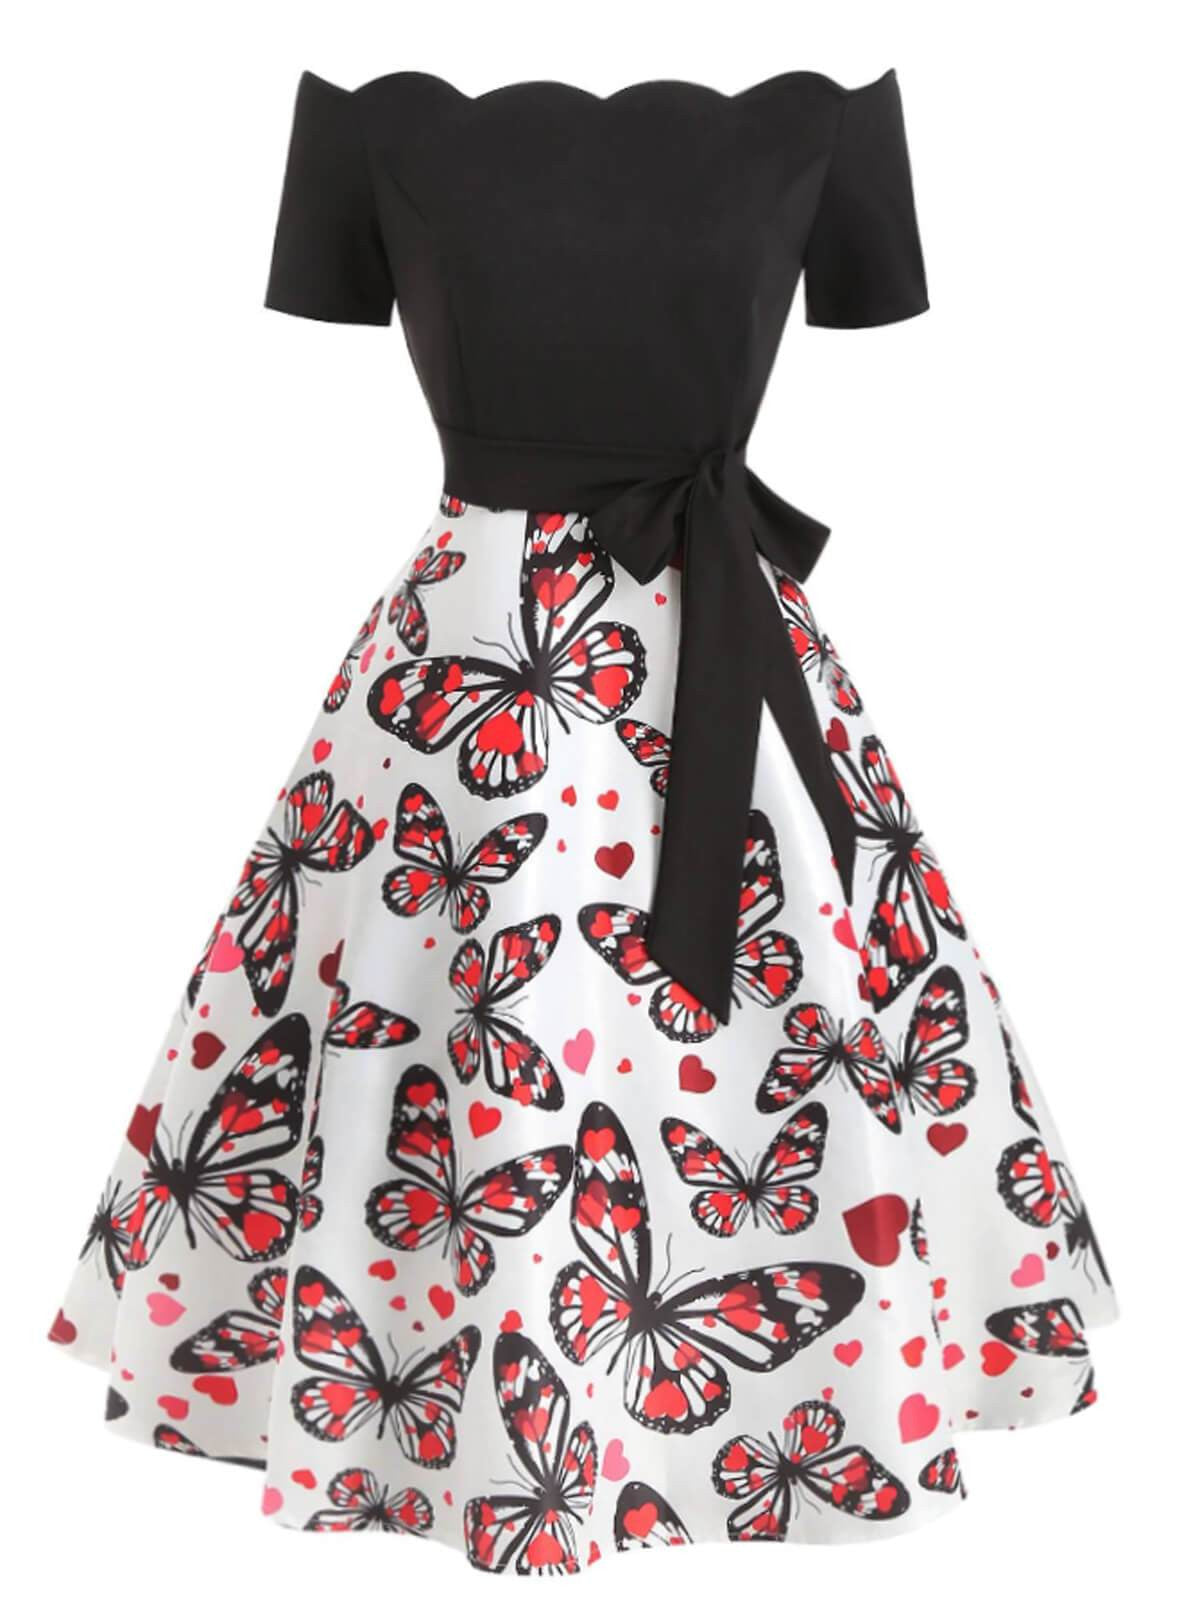 cdb3fa8747f Black 1950s Butterfly Off Shoulder Dress – Retro Stage - Chic ...